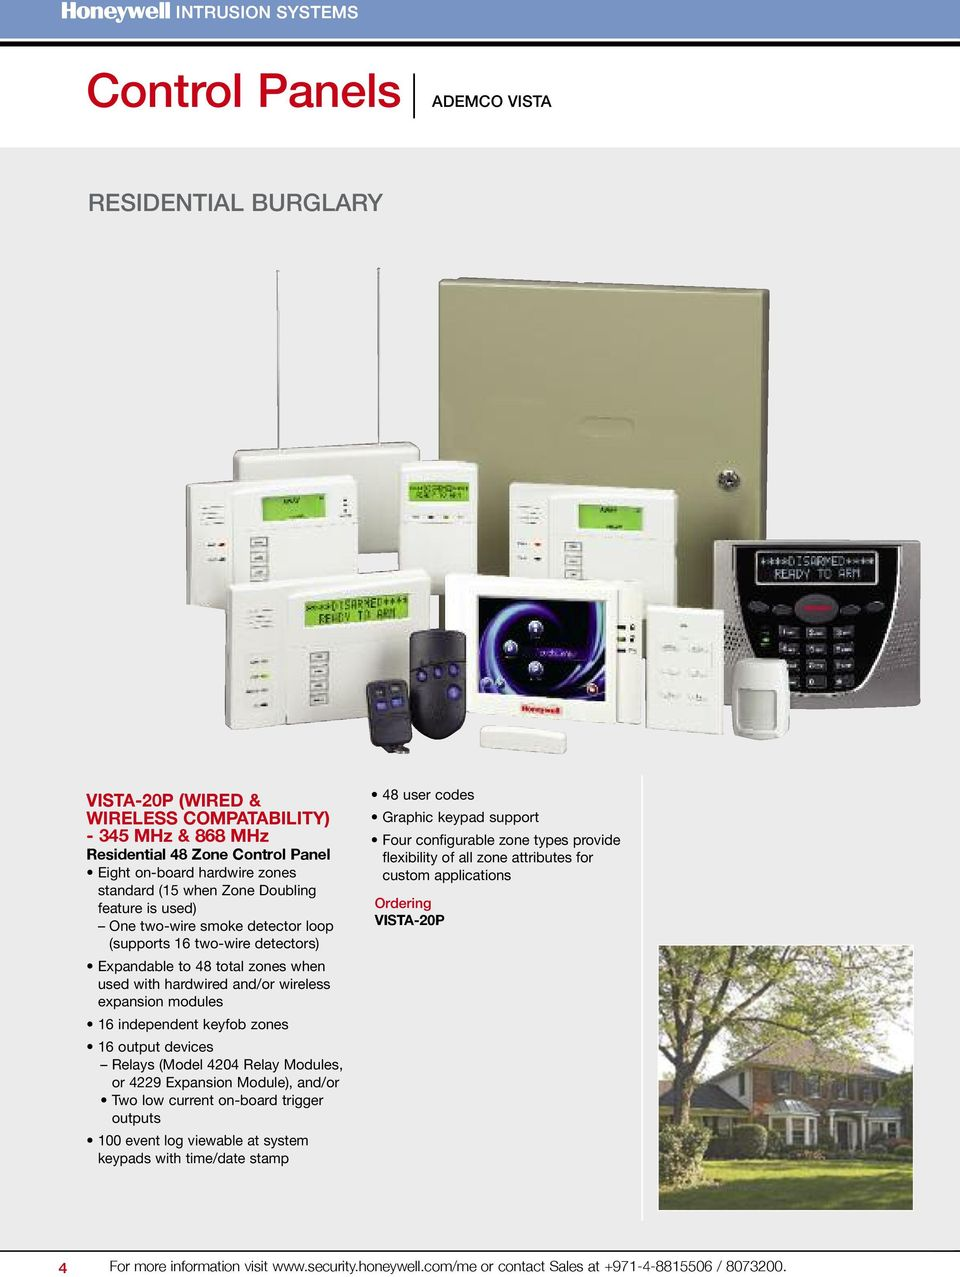 Honeywell Dualtec Pir Wiring Diy Installers Security Systems Group Intrusion Pdf Keyfob Zones 16 Output Devices Relays Model 4204 Relay Modules Or 4229 Expansion Module